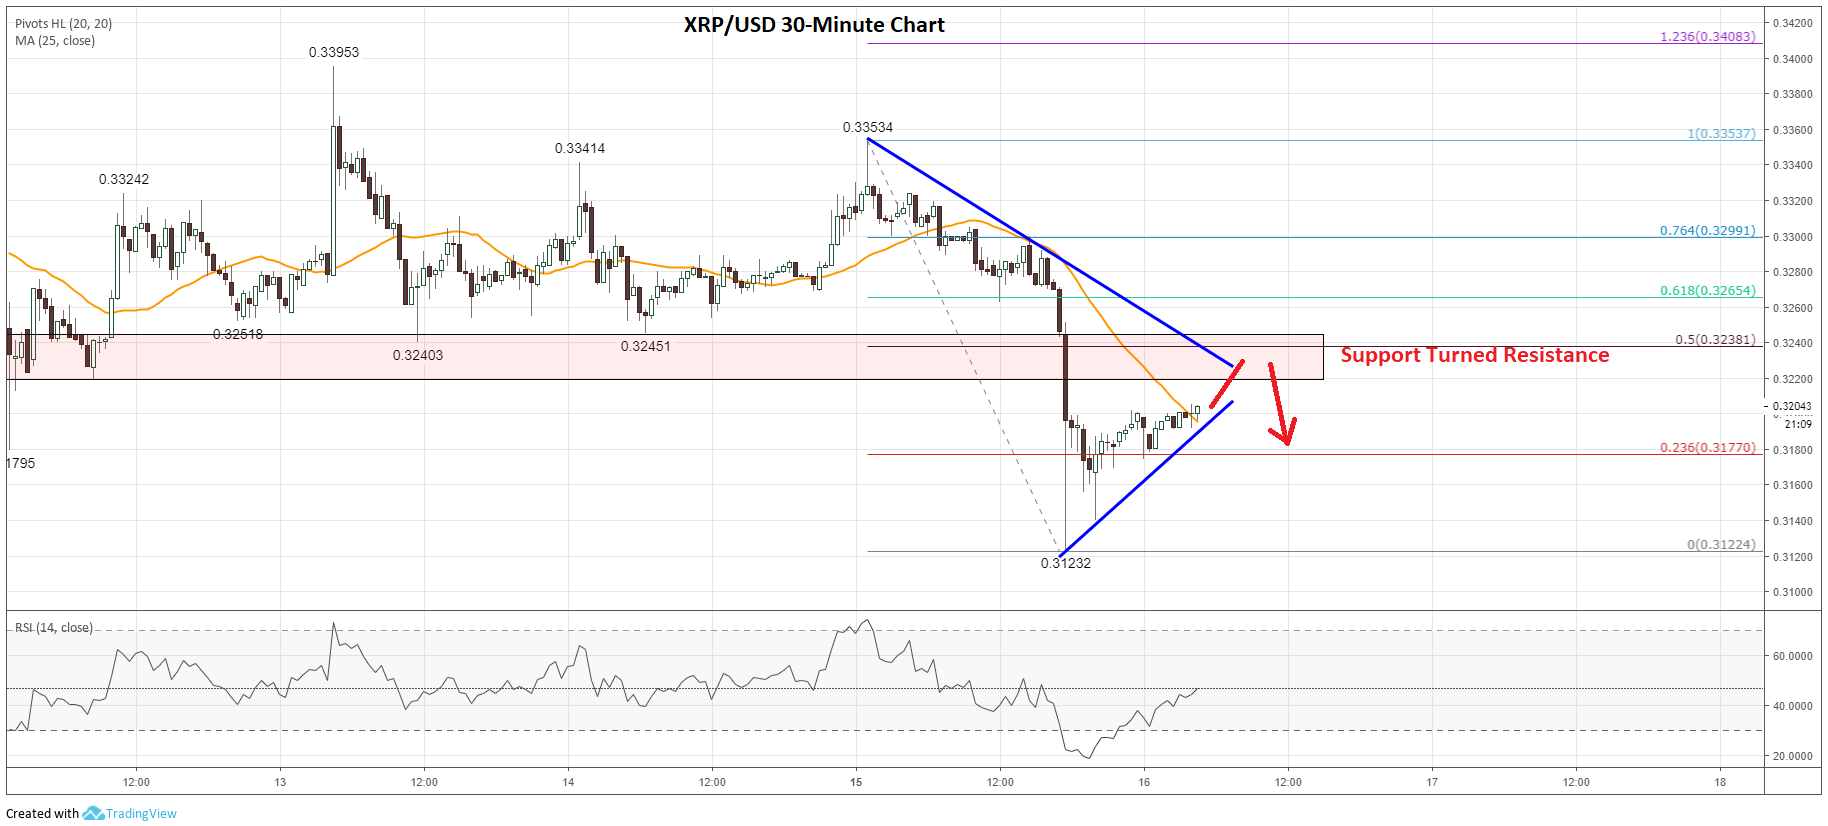 Ripple (XRP) Price Prediction: Key Support Turned Resistance